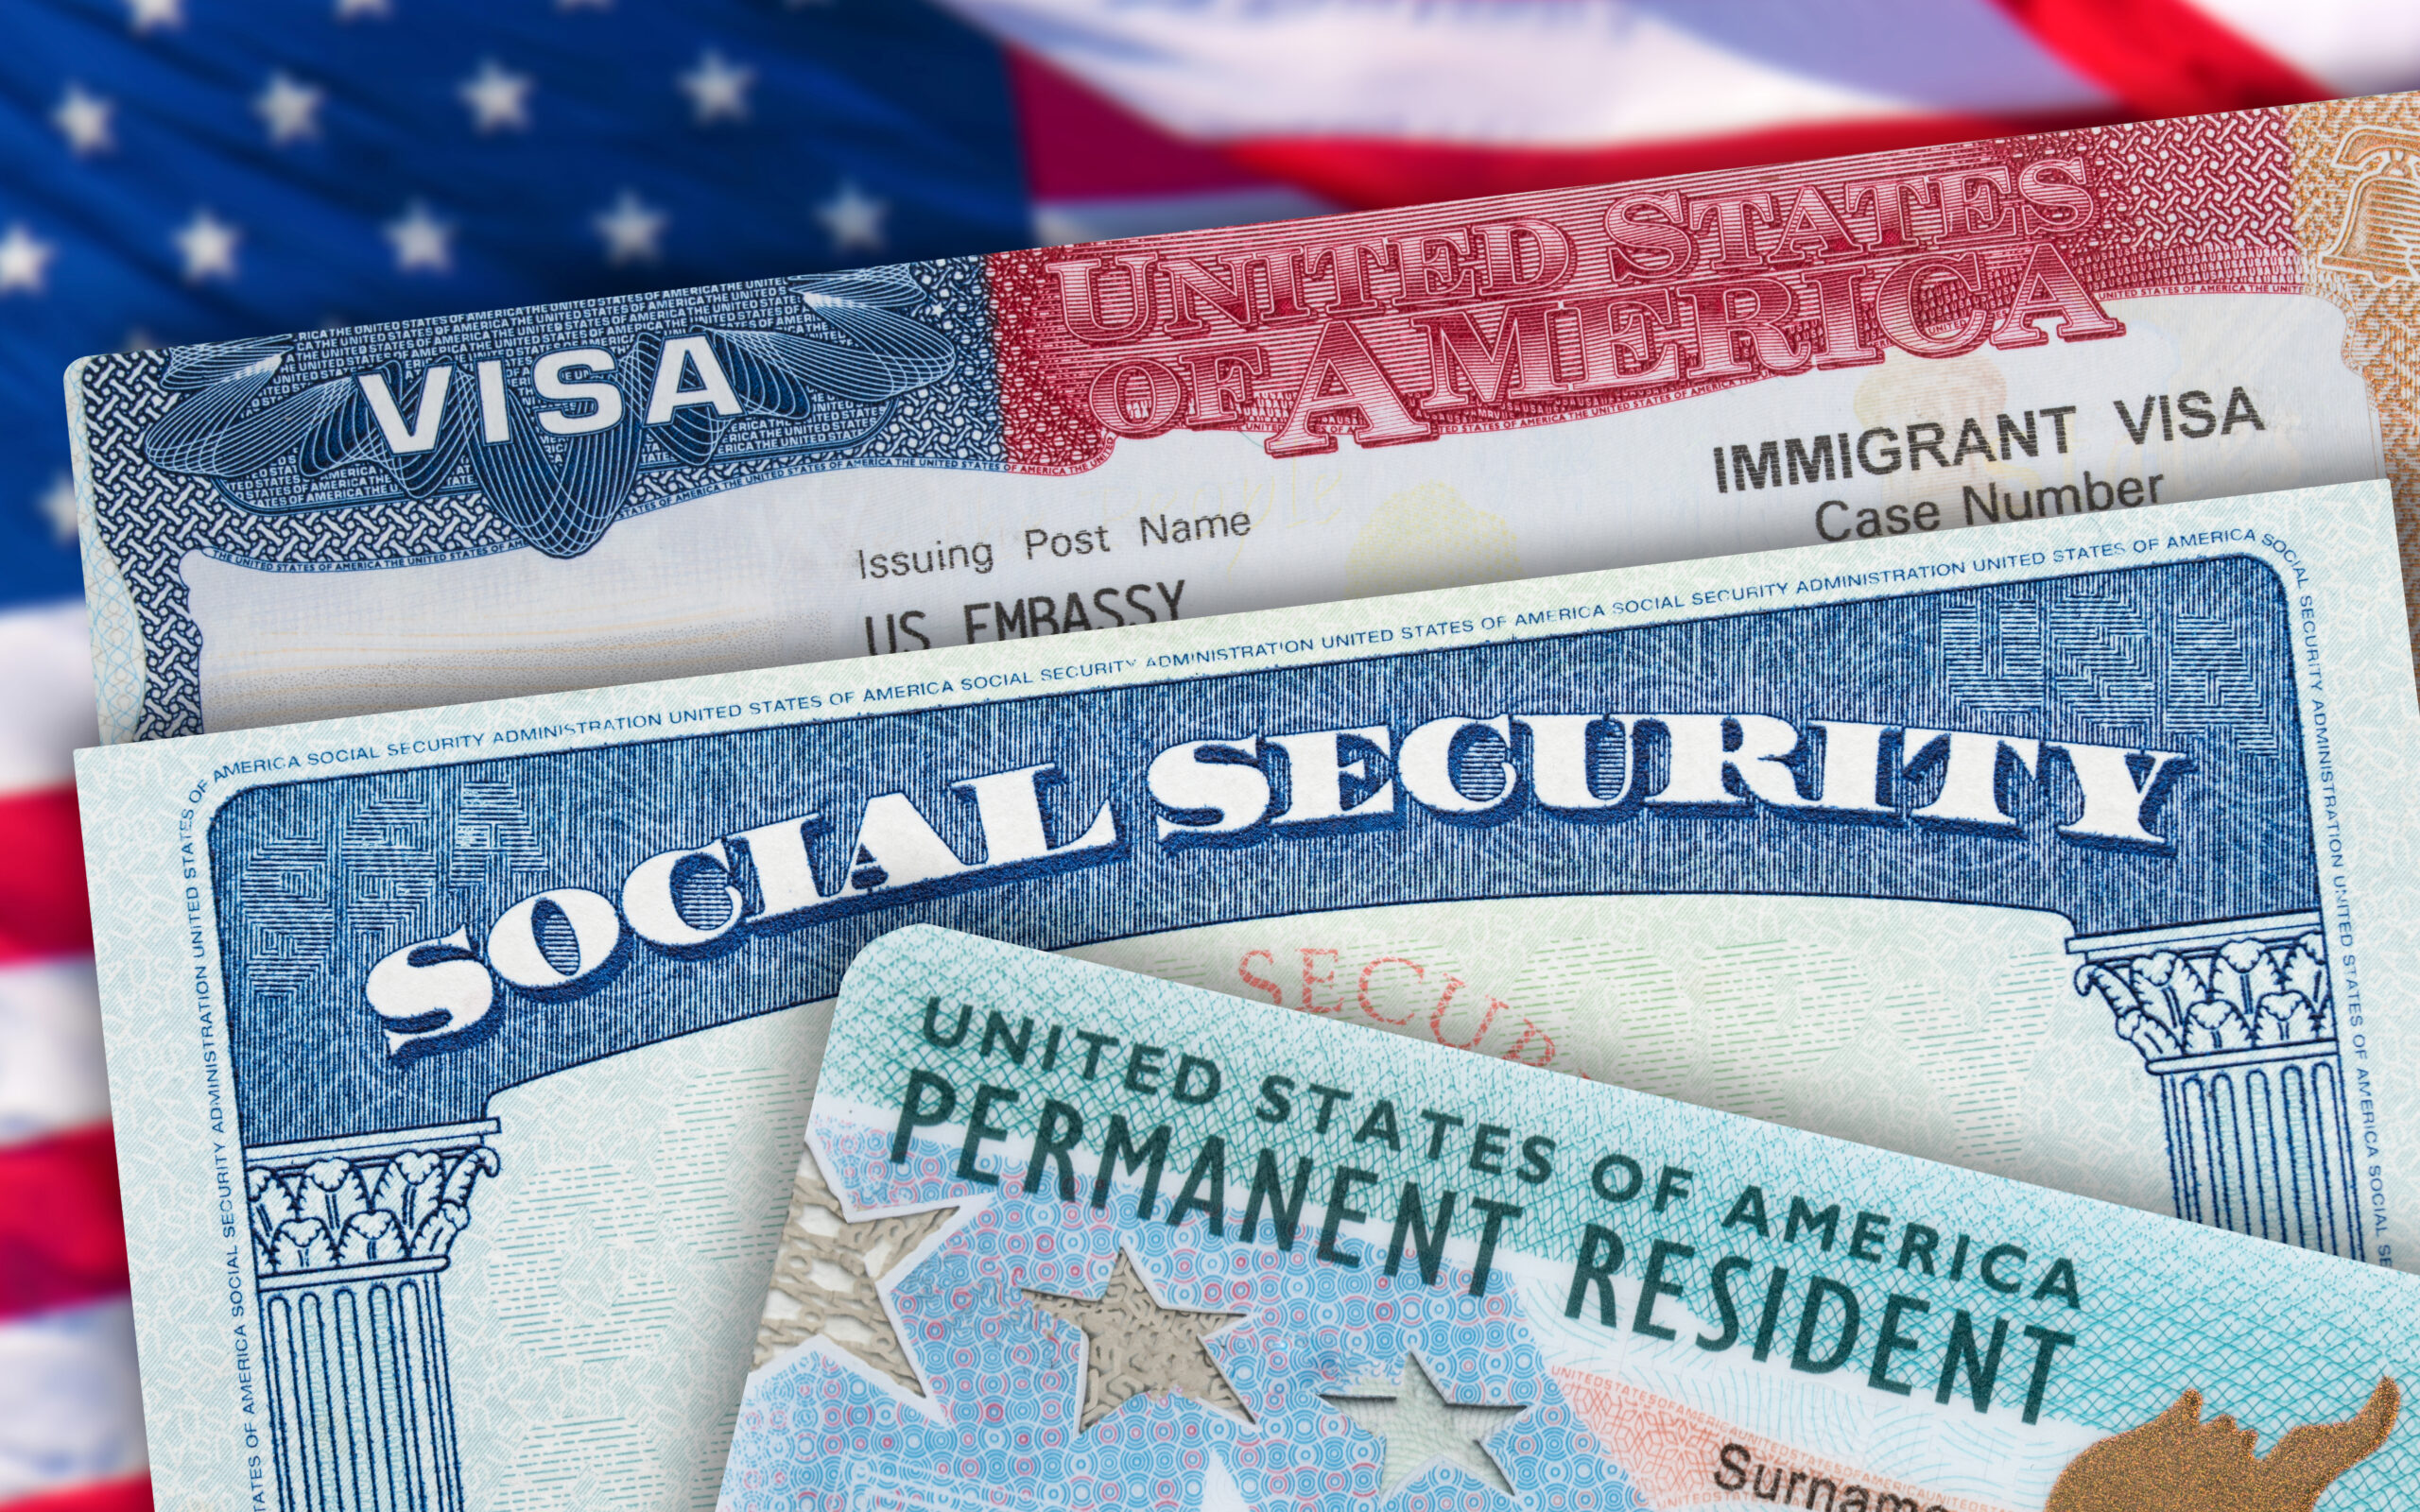 Green Card US Permanent resident USA. Social Security card. VISA United States of America. Electronic Diversity Visa Lottery DV-2022 DV Lottery Results. American flag on background.